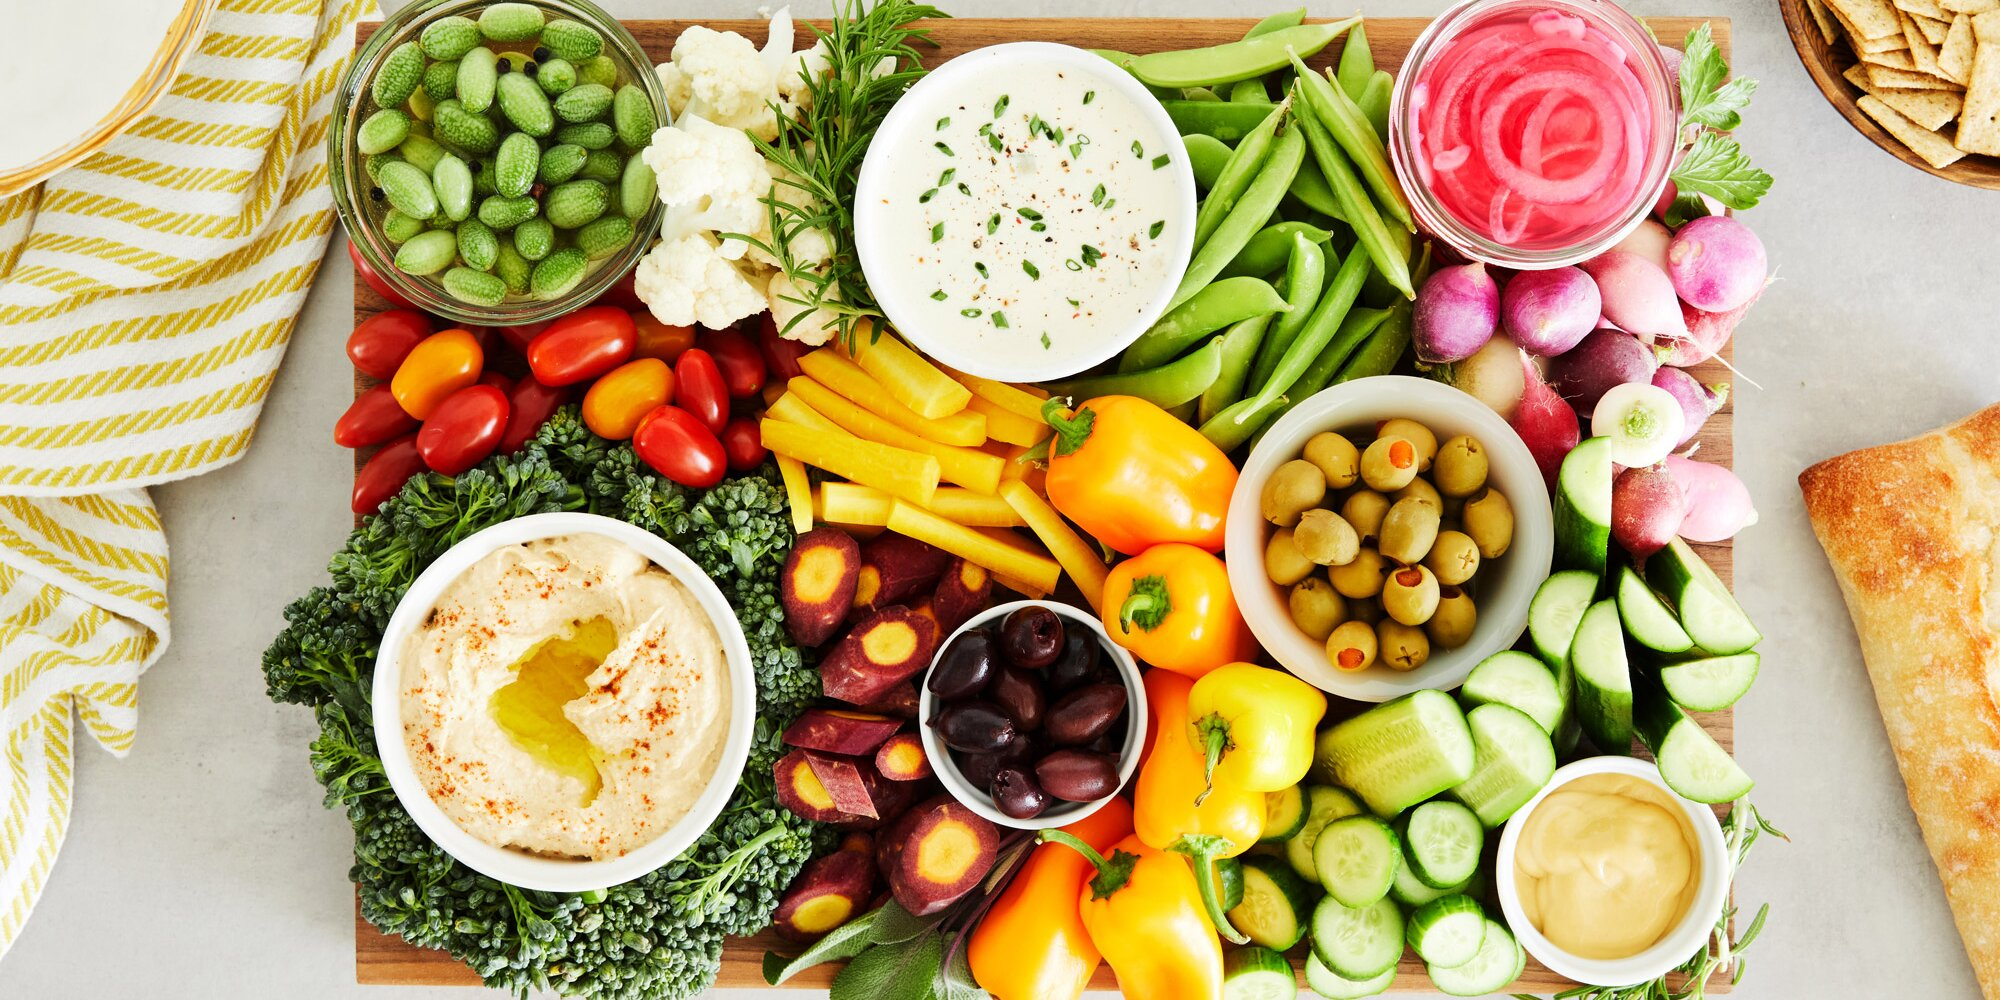 This Epic Crudités and Dips Platter Is the Ultimate Healthy, Delicious Way to Start the Thanksgiving Feast